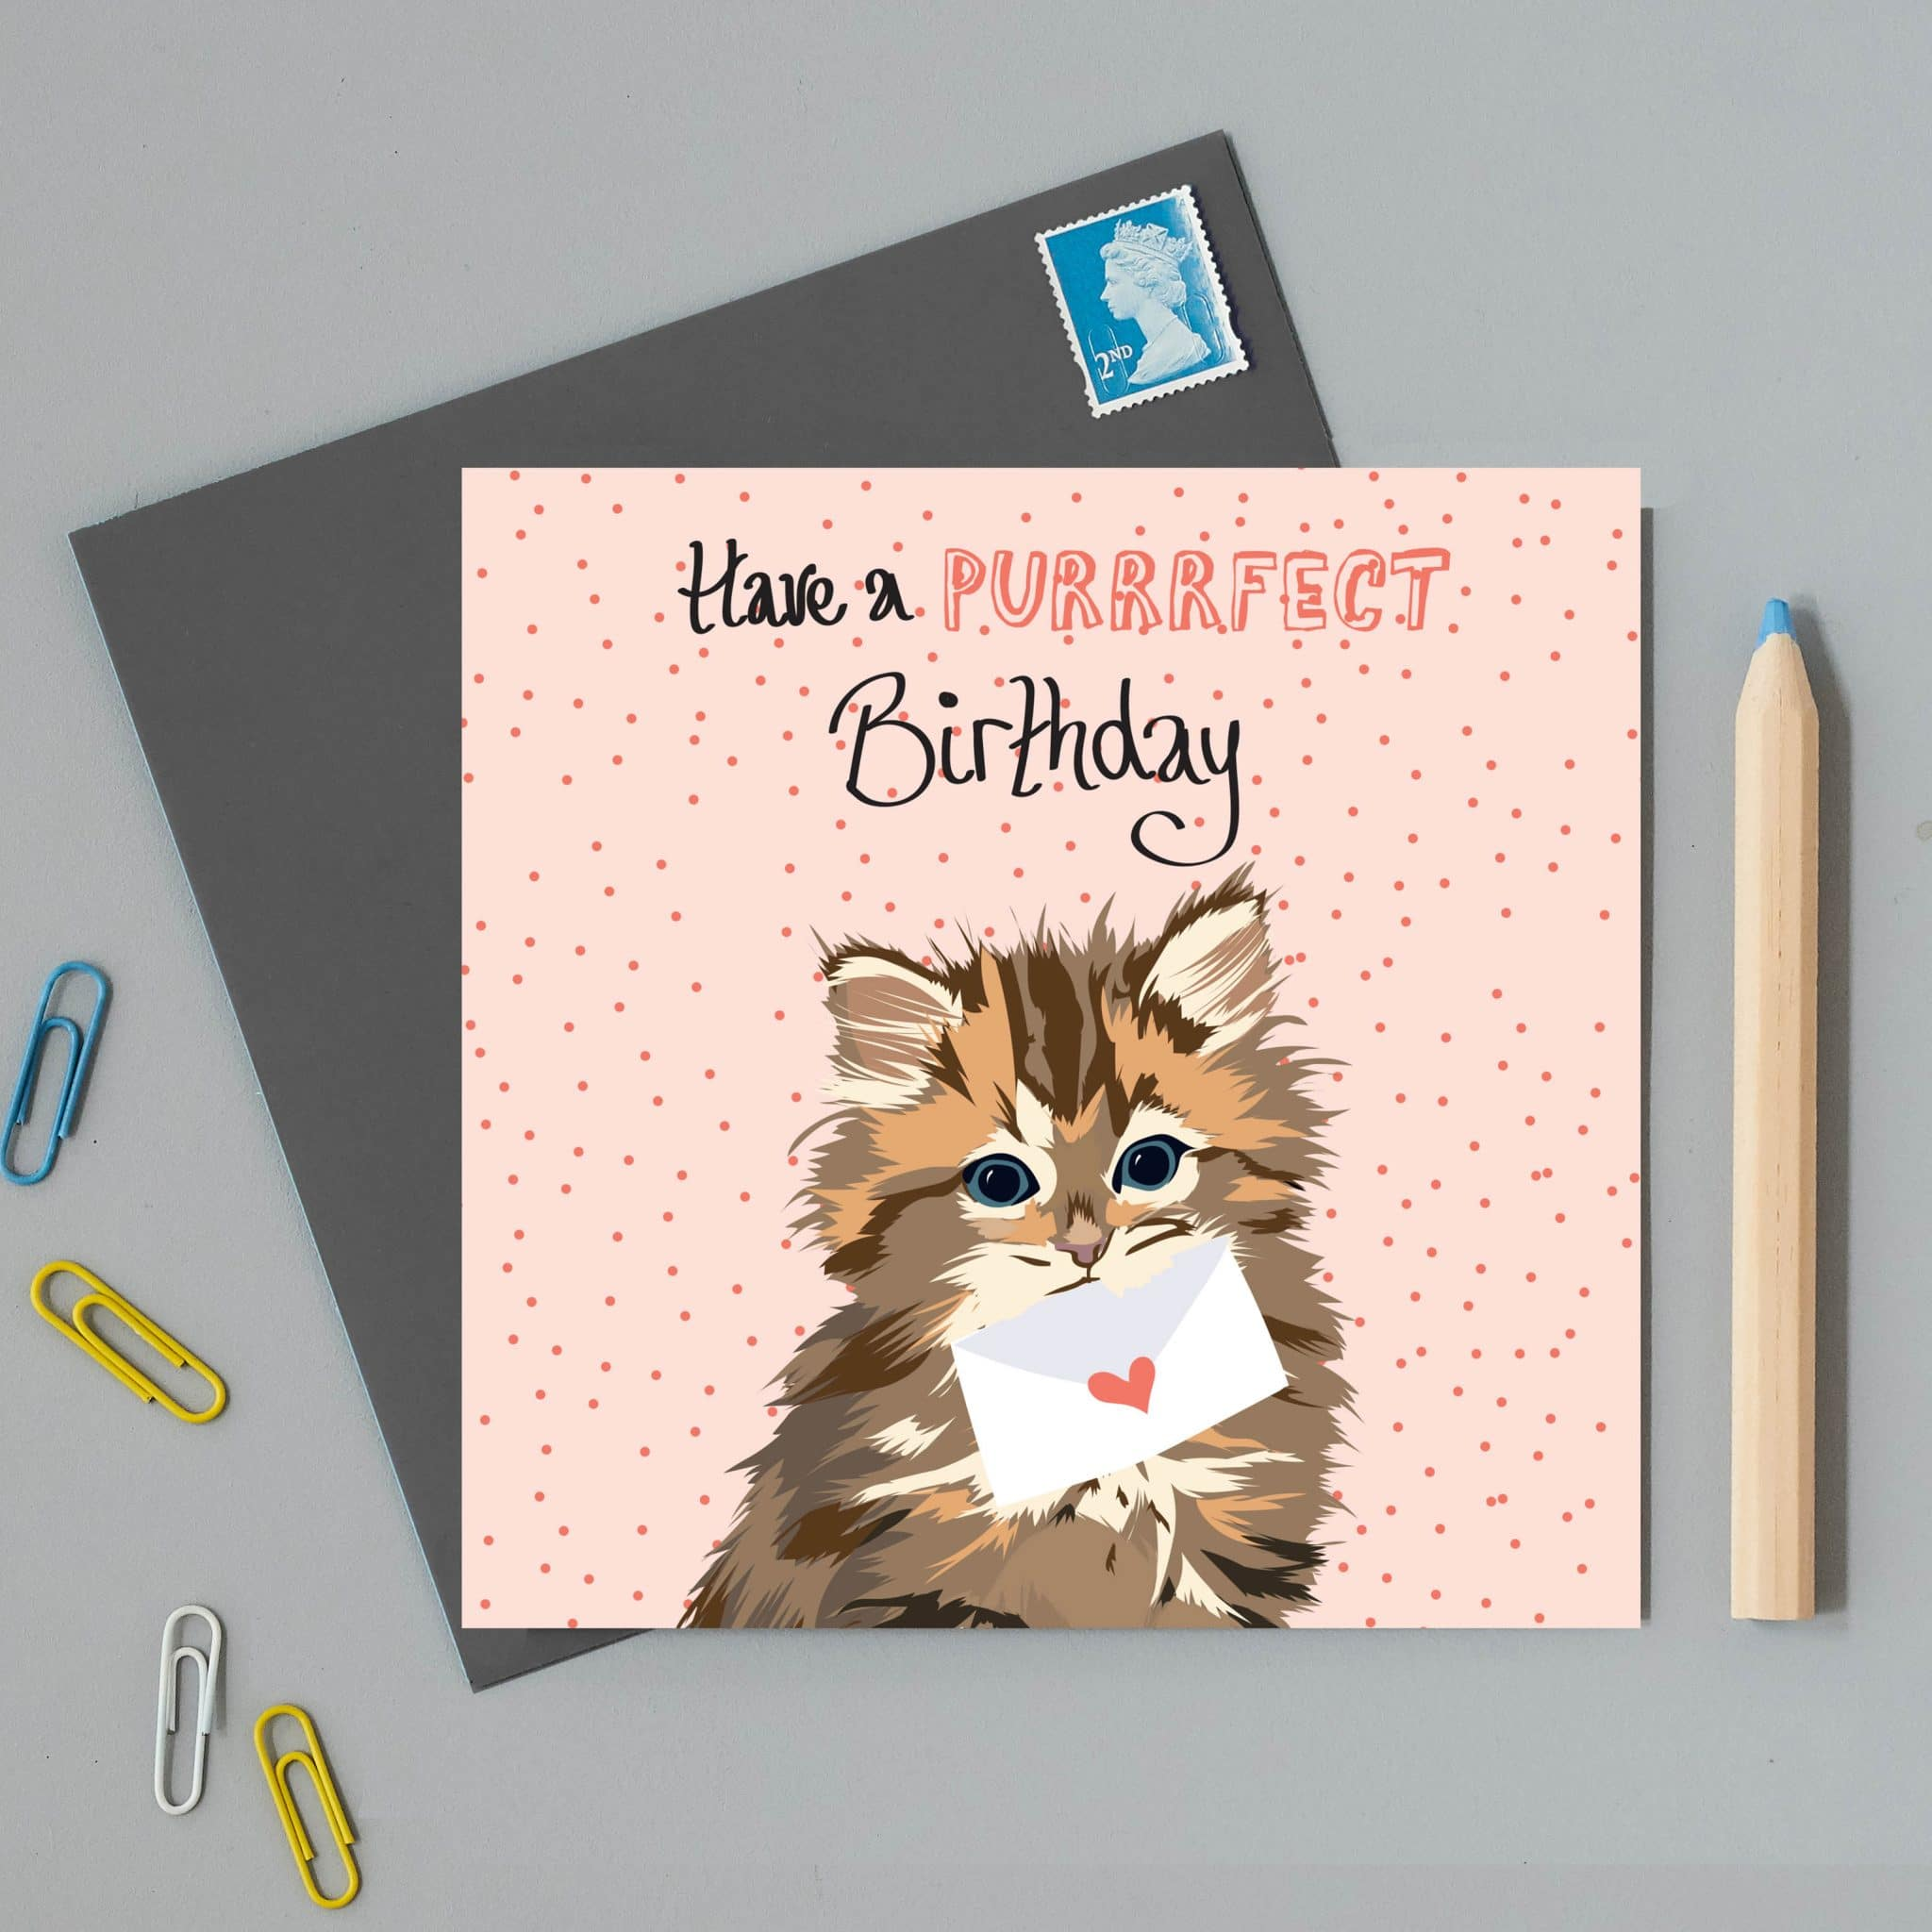 Have a Purrrfect Birthday Cat Card